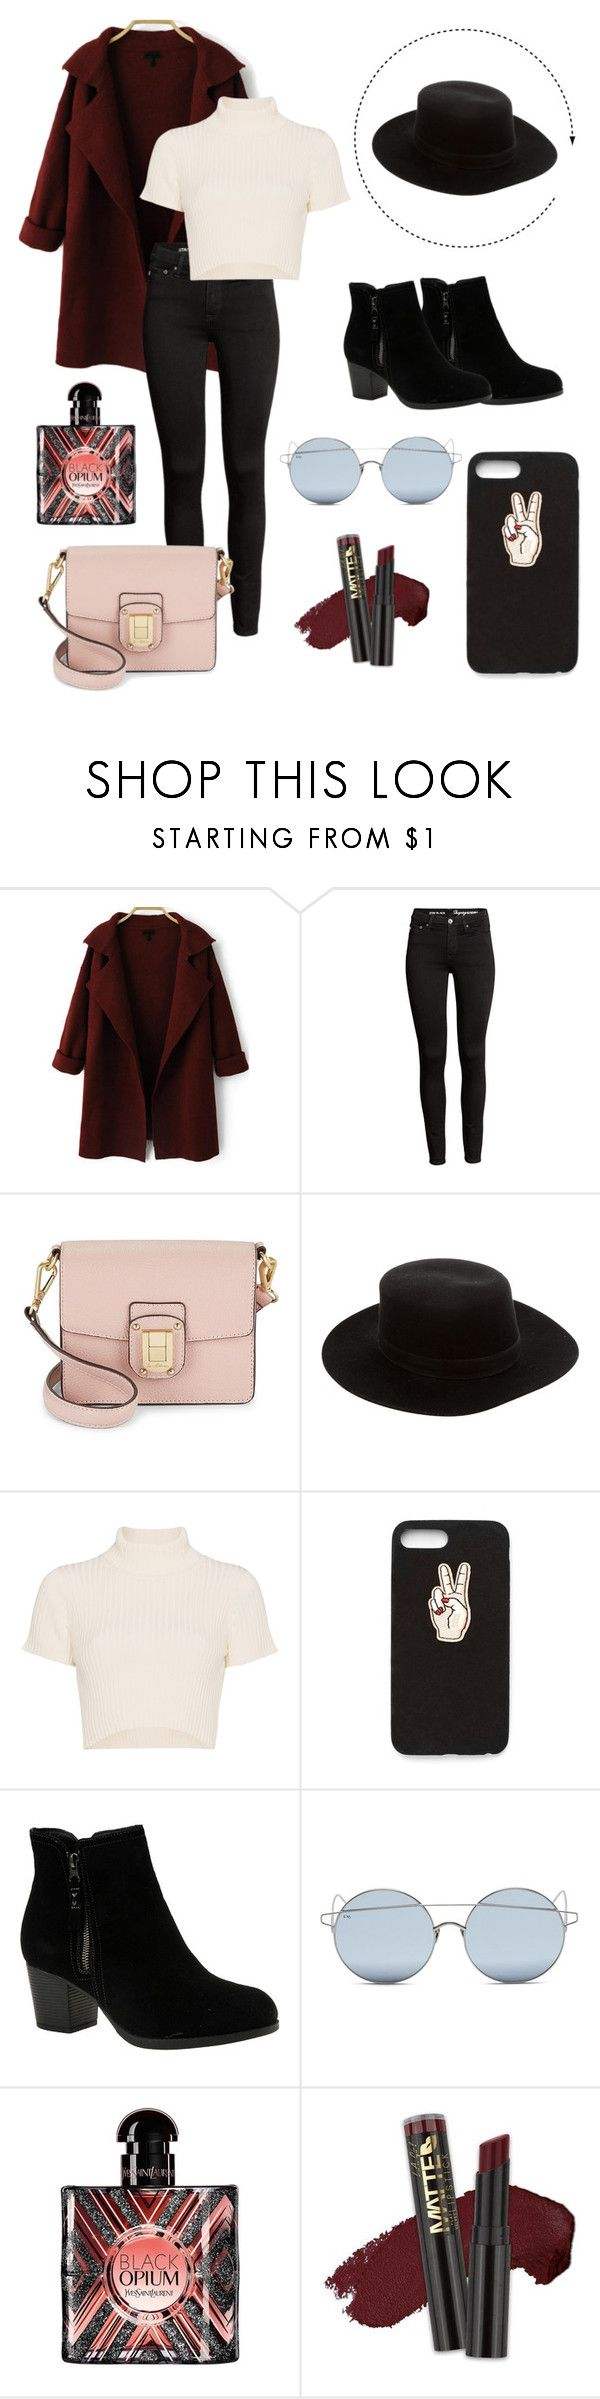 """""""🥀🌚"""" by nataliieruth ❤ liked on Polyvore featuring Sam Edelman, Janessa Leone, Staud, Nasty Gal, Skechers, For Art's Sake, Yves Saint Laurent and L.A. Girl"""